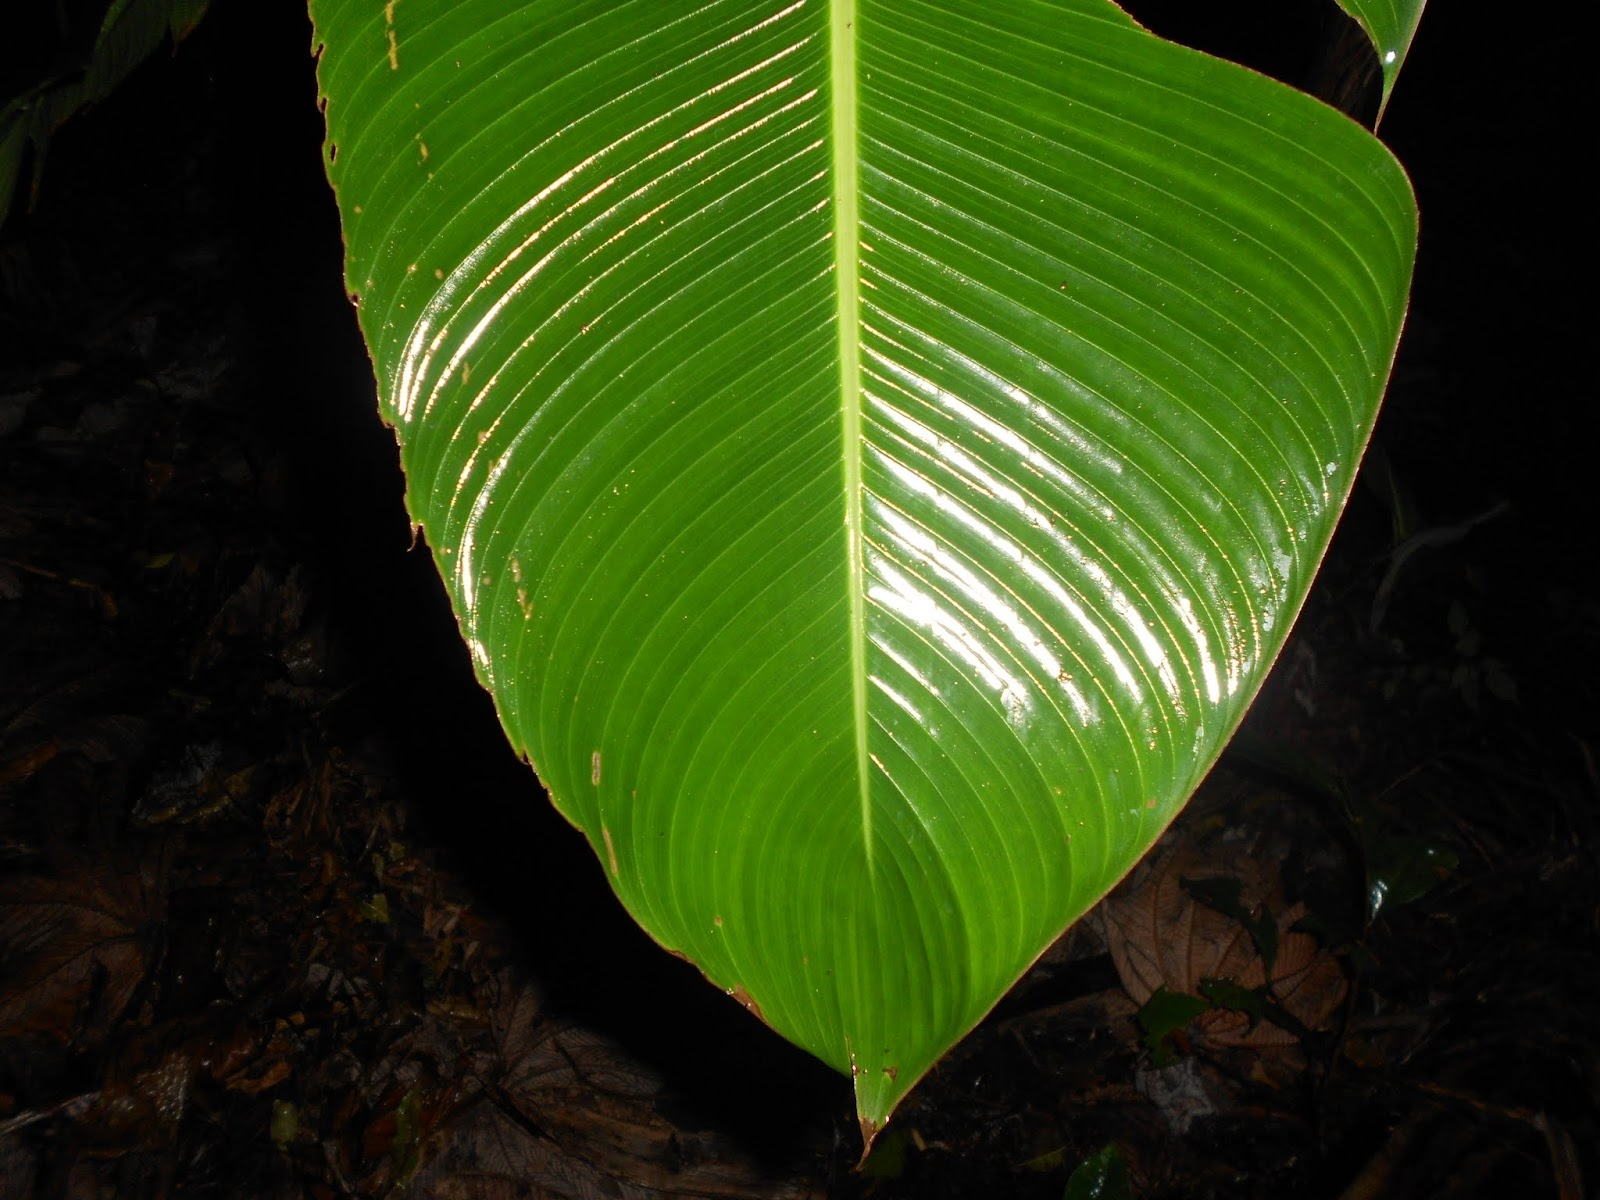 shiny leaf at night in rainforest leaf template rainforest leaf